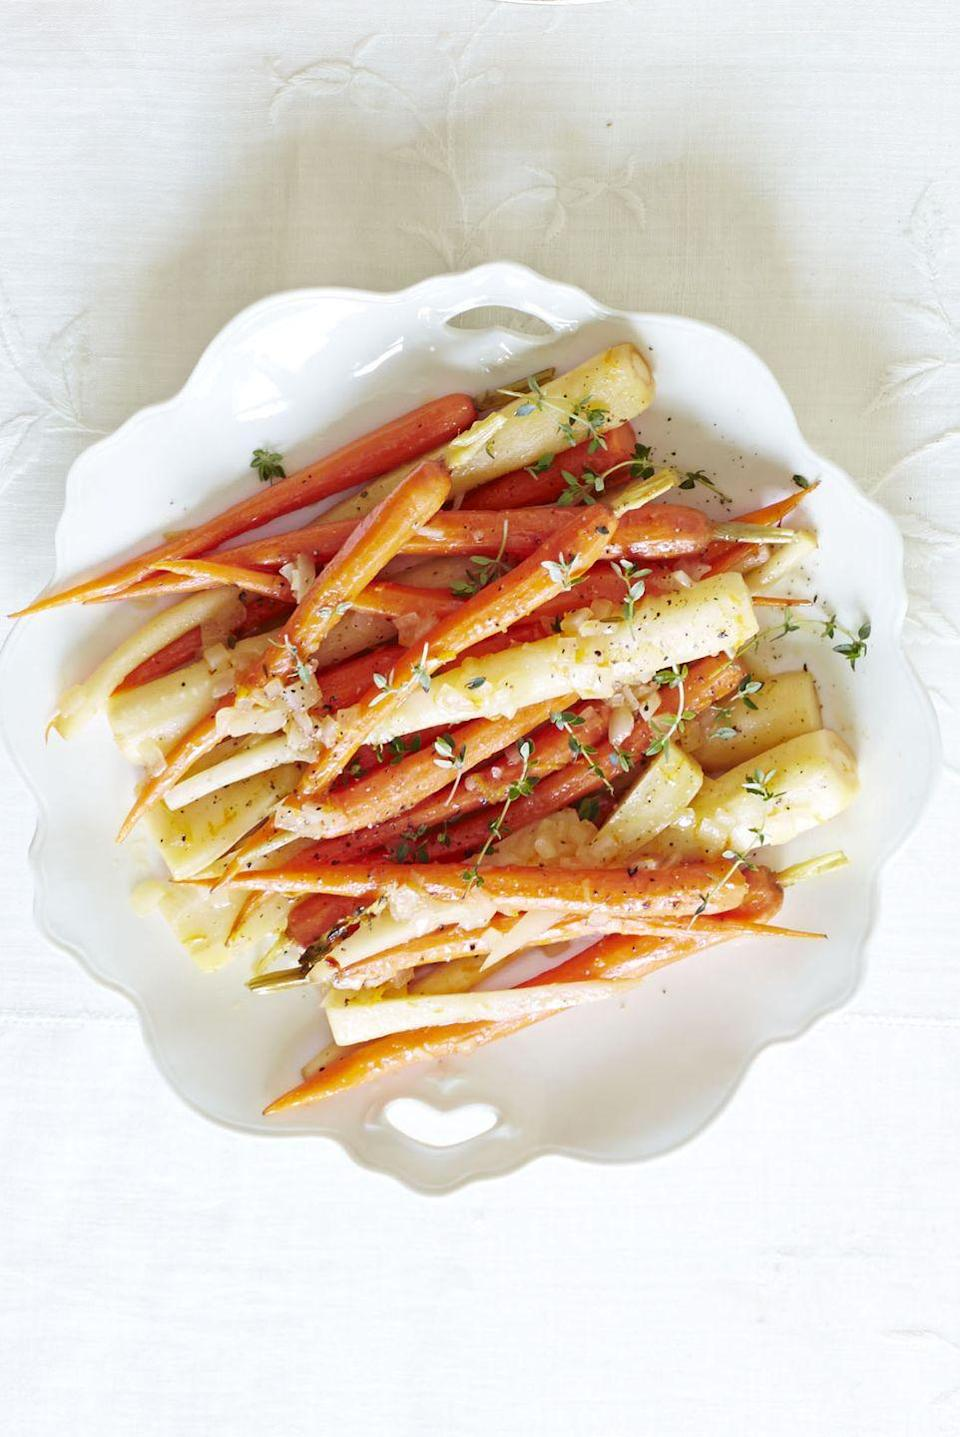 "<p>These OJ-braised veggies get a little flavor kick from crushed red pepper flakes — double the amount for even more oomph. No shallots? Half a small onion also works.</p><p><a href=""https://www.goodhousekeeping.com/food-recipes/a14496/orange-braised-carrots-parsnips-recipe-ghk1113/"" rel=""nofollow noopener"" target=""_blank"" data-ylk=""slk:Get the recipe for Orange-Braised Carrots and Parsnips »"" class=""link rapid-noclick-resp""><em>Get the recipe for Orange-Braised Carrots and Parsnips »</em></a></p>"